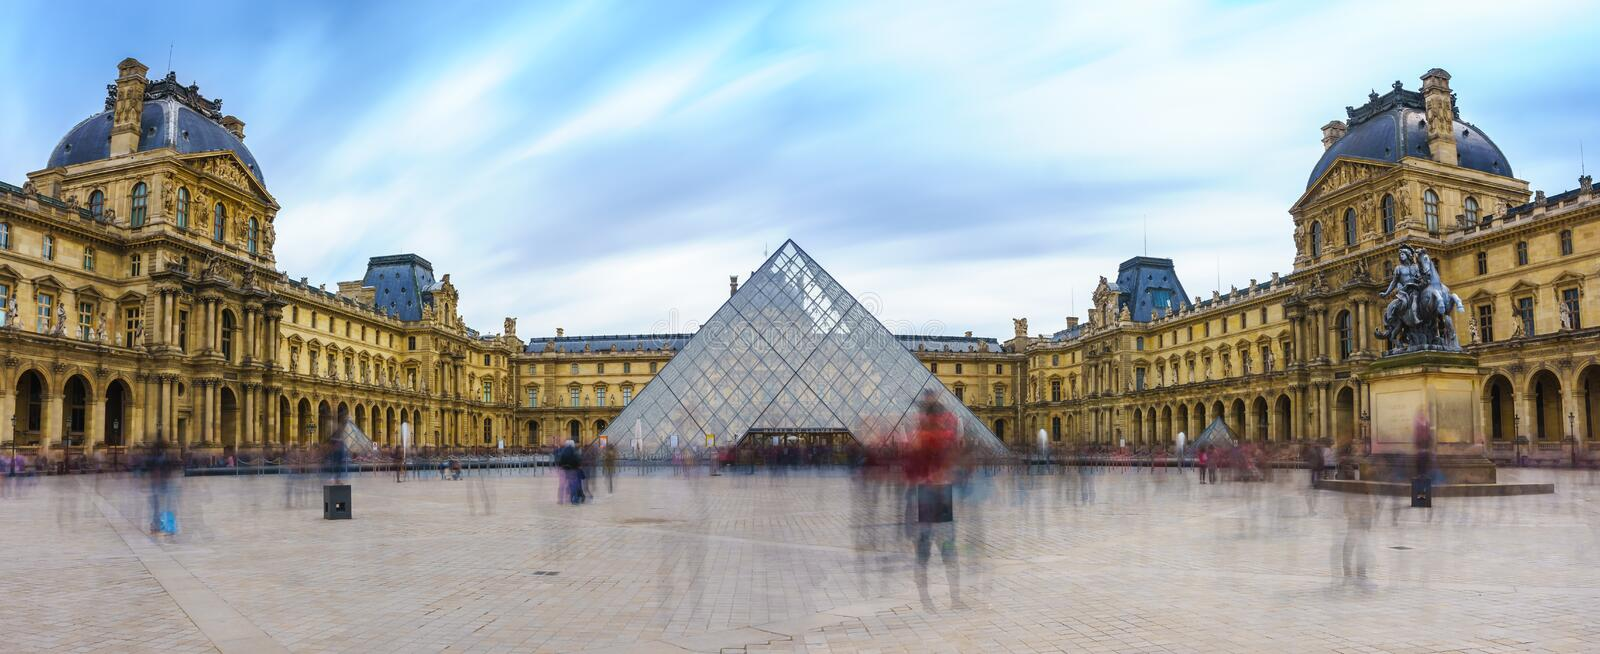 Paris, France - May 1, 2017: Panoramic view of the Louvre Museum. Musee Du Louvre with a cloudy day on May 1, 2017, in Paris, France stock photo